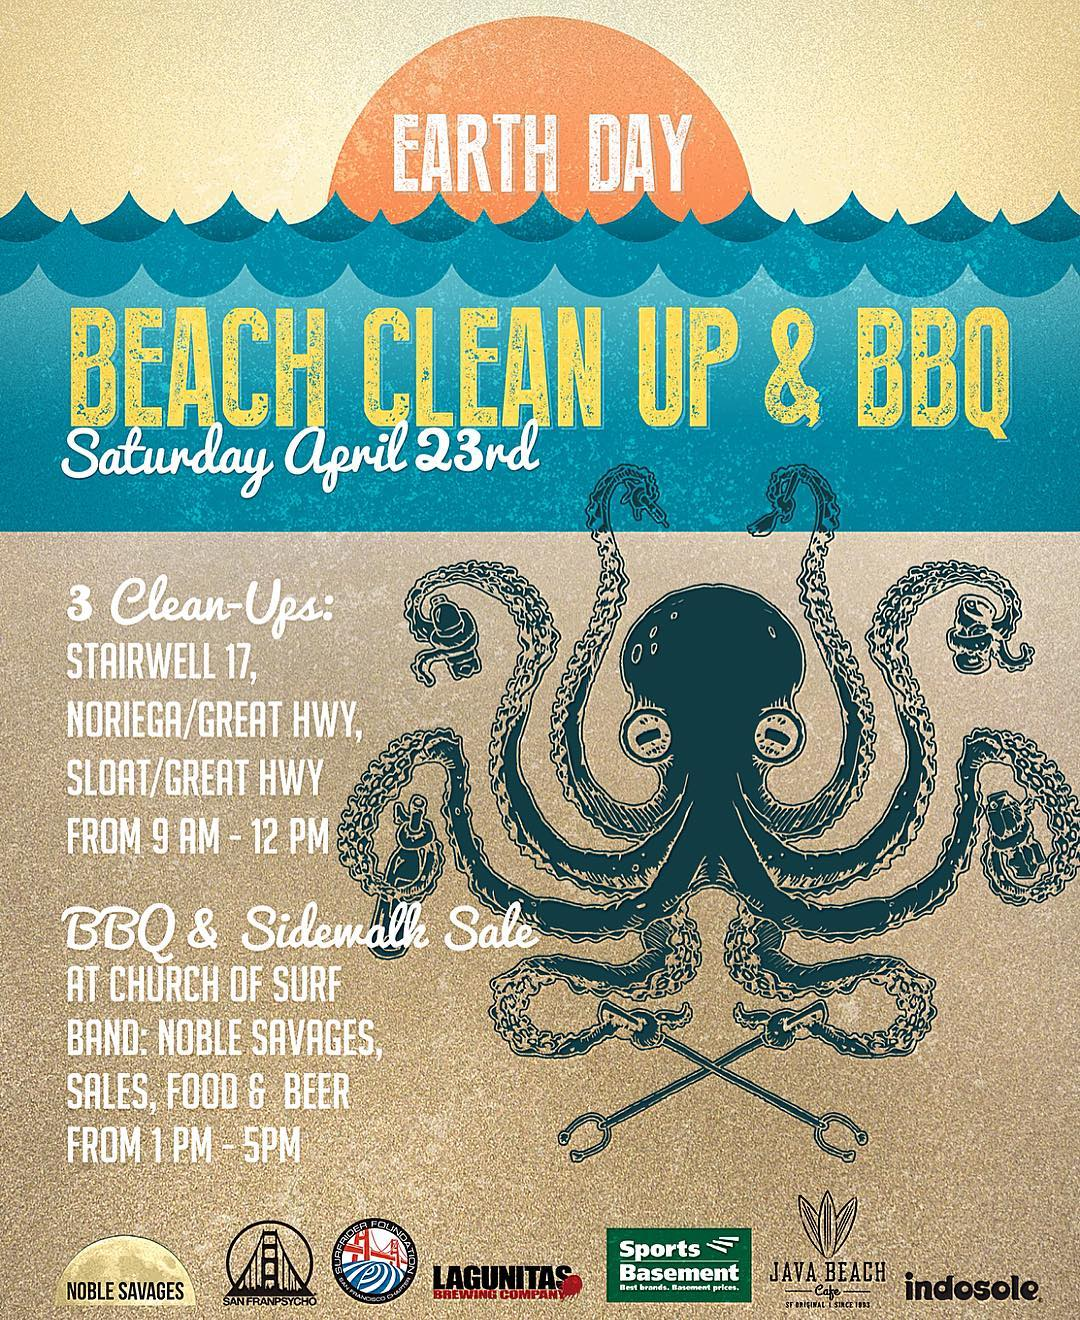 Celebrate #earthday with us this Sat 4/23 by cleaning your favorite part of #oceanbeach then join our partners for an afternoon BBQ in the Sunset. #volunteer #protectandenjoy #noriega #sloat #stairwell17 #OBSF